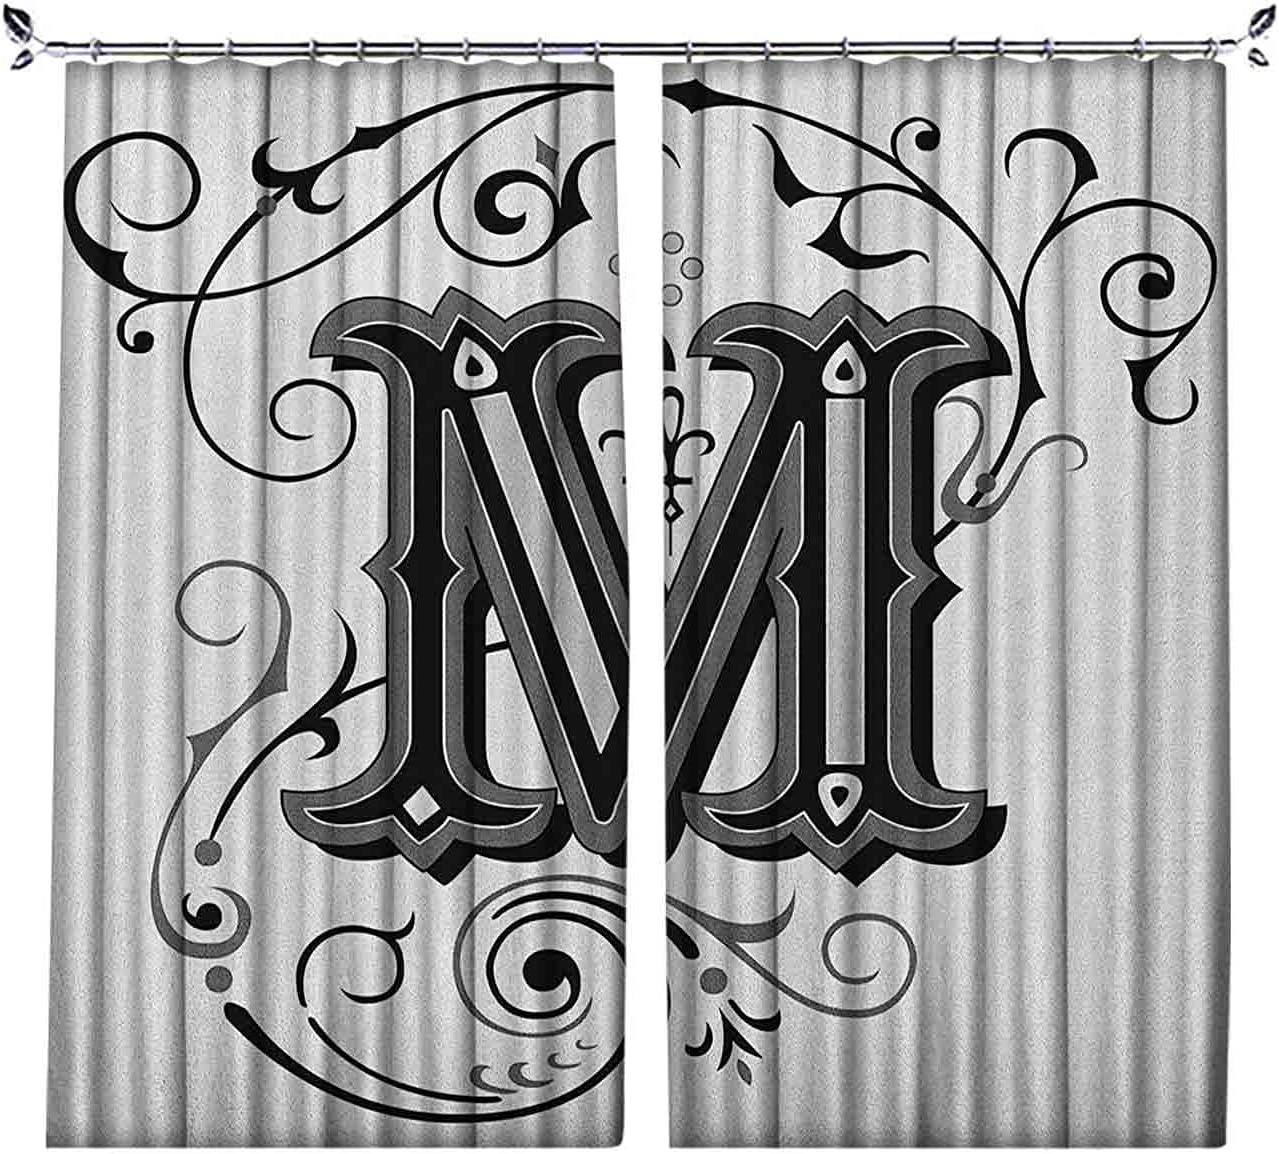 Room Darkening Letter M Denver Mall Curtain Abstract D in Design Ornamental Weekly update